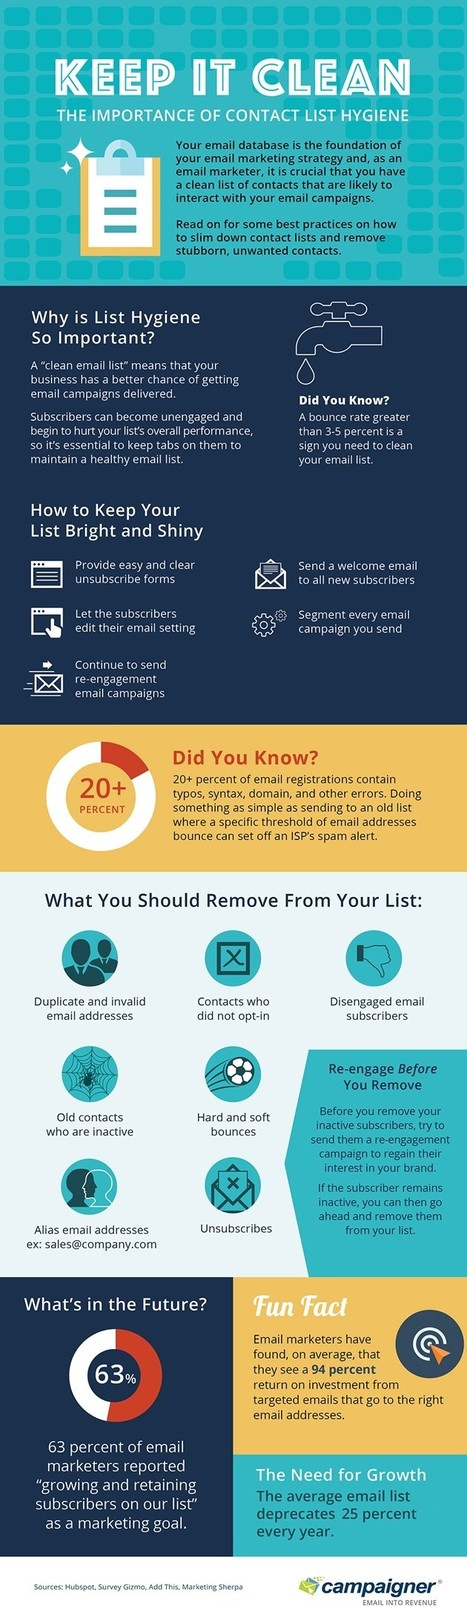 Keep It Clean: The Importance of Email-List Hygiene [Infographic] - Profs | Email Marketing Today and Tomorrow | Scoop.it